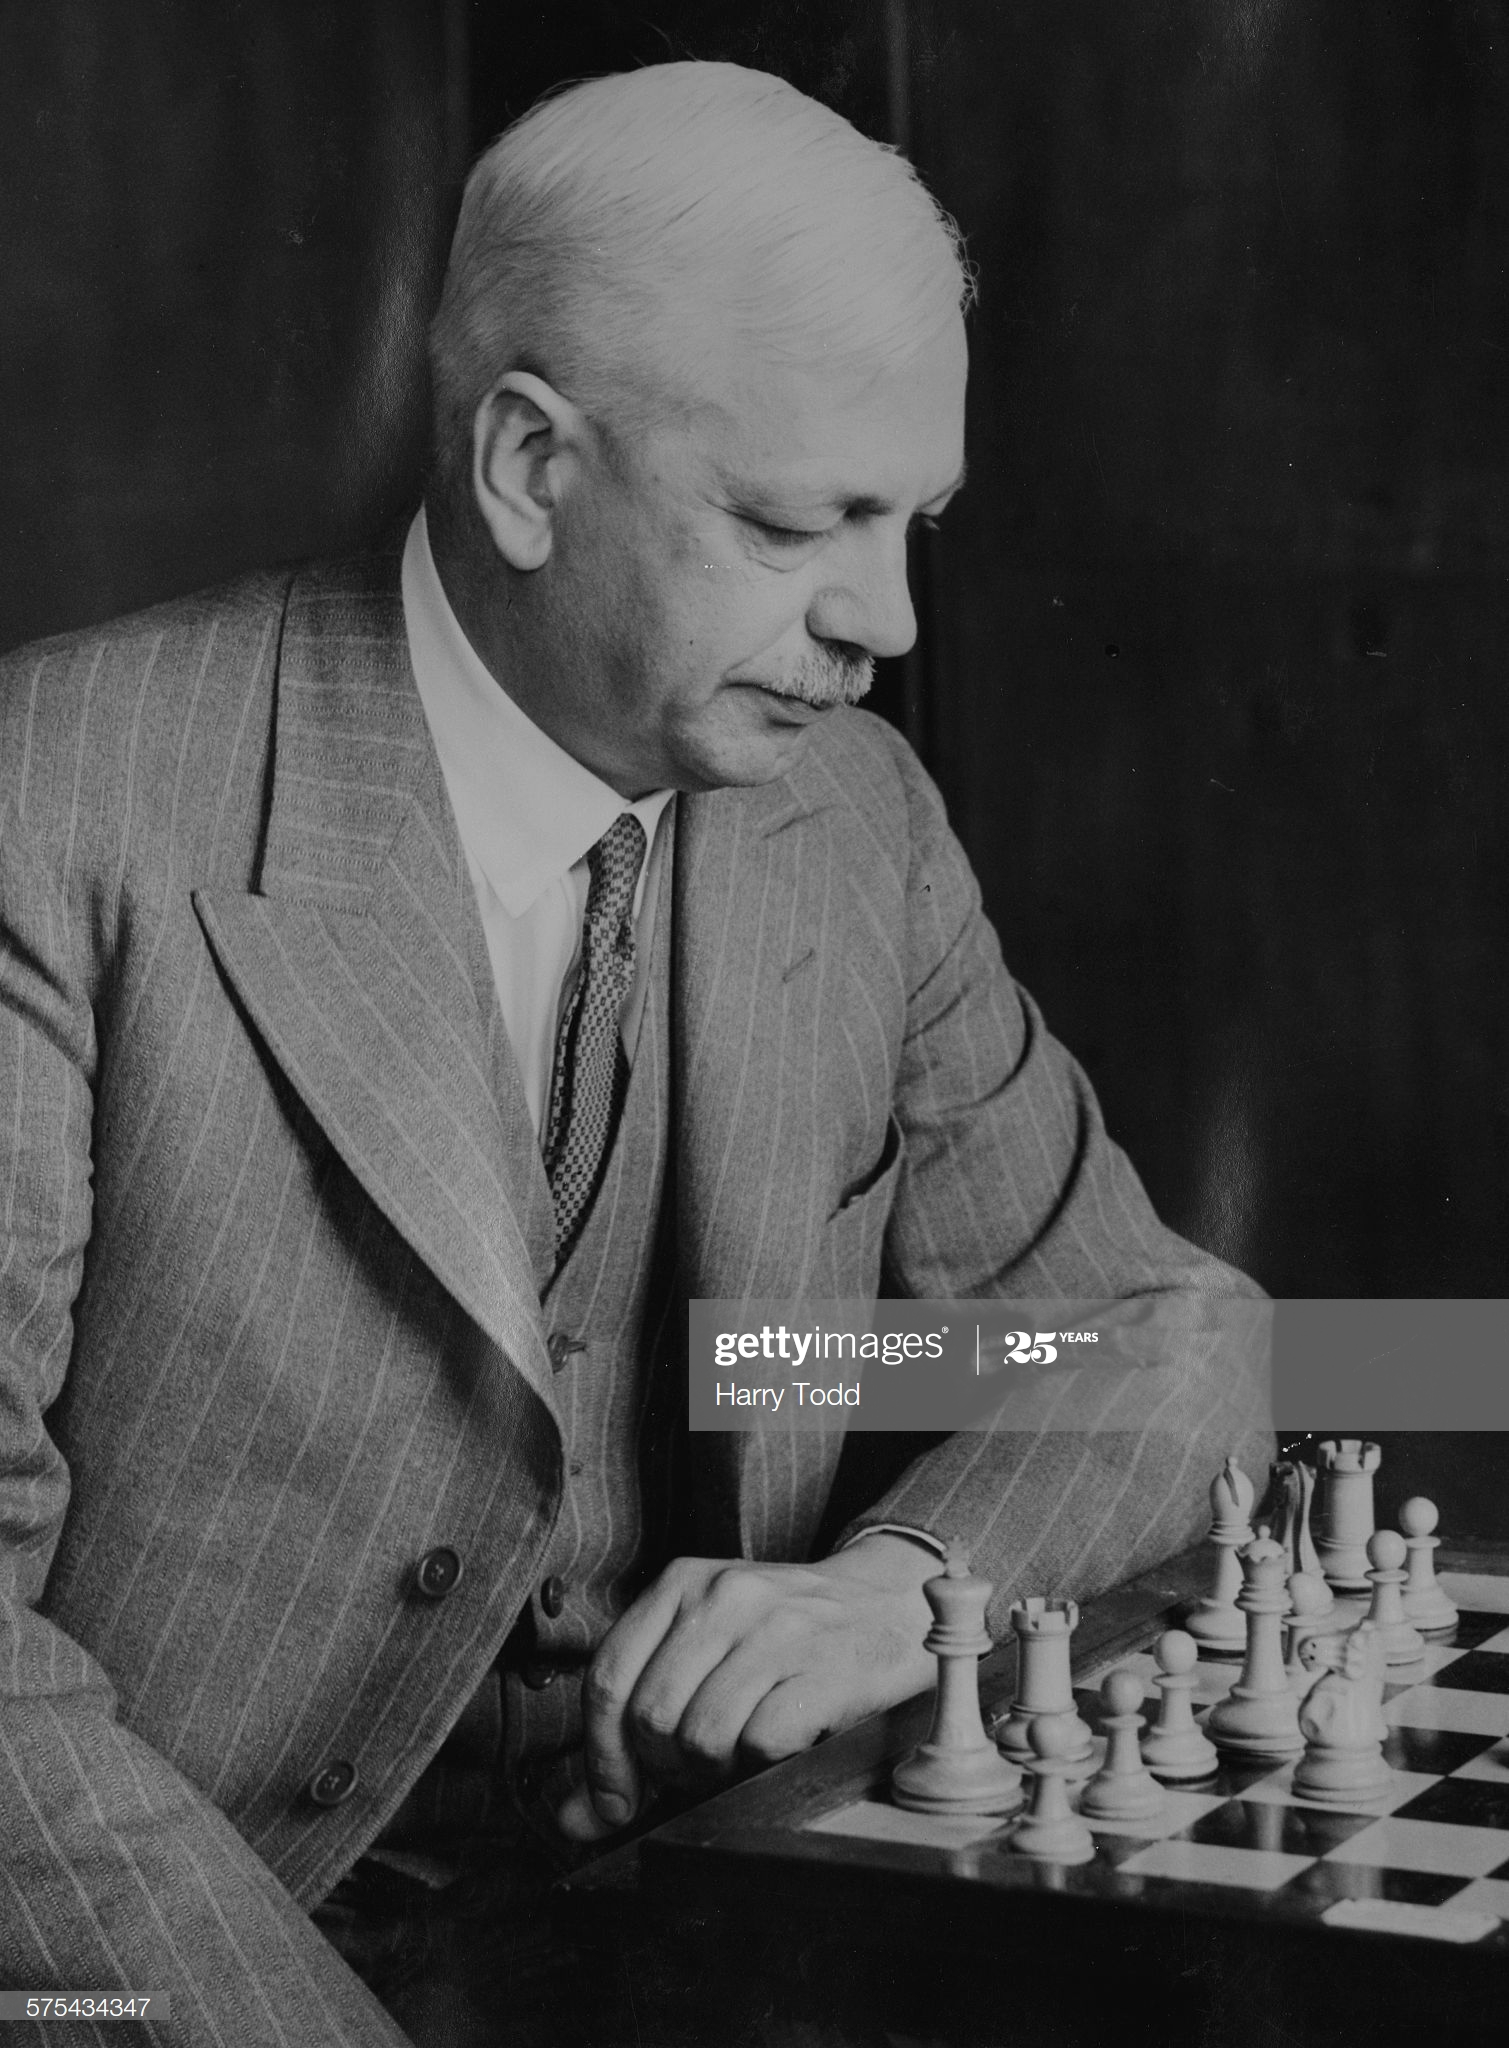 British chess champion Sir George Thomas playing at the Annual British Chess Federation Championship in Yarmouth, England, July 11th 1935. (Photo by Harry Todd/Fox Photos/Getty Images)